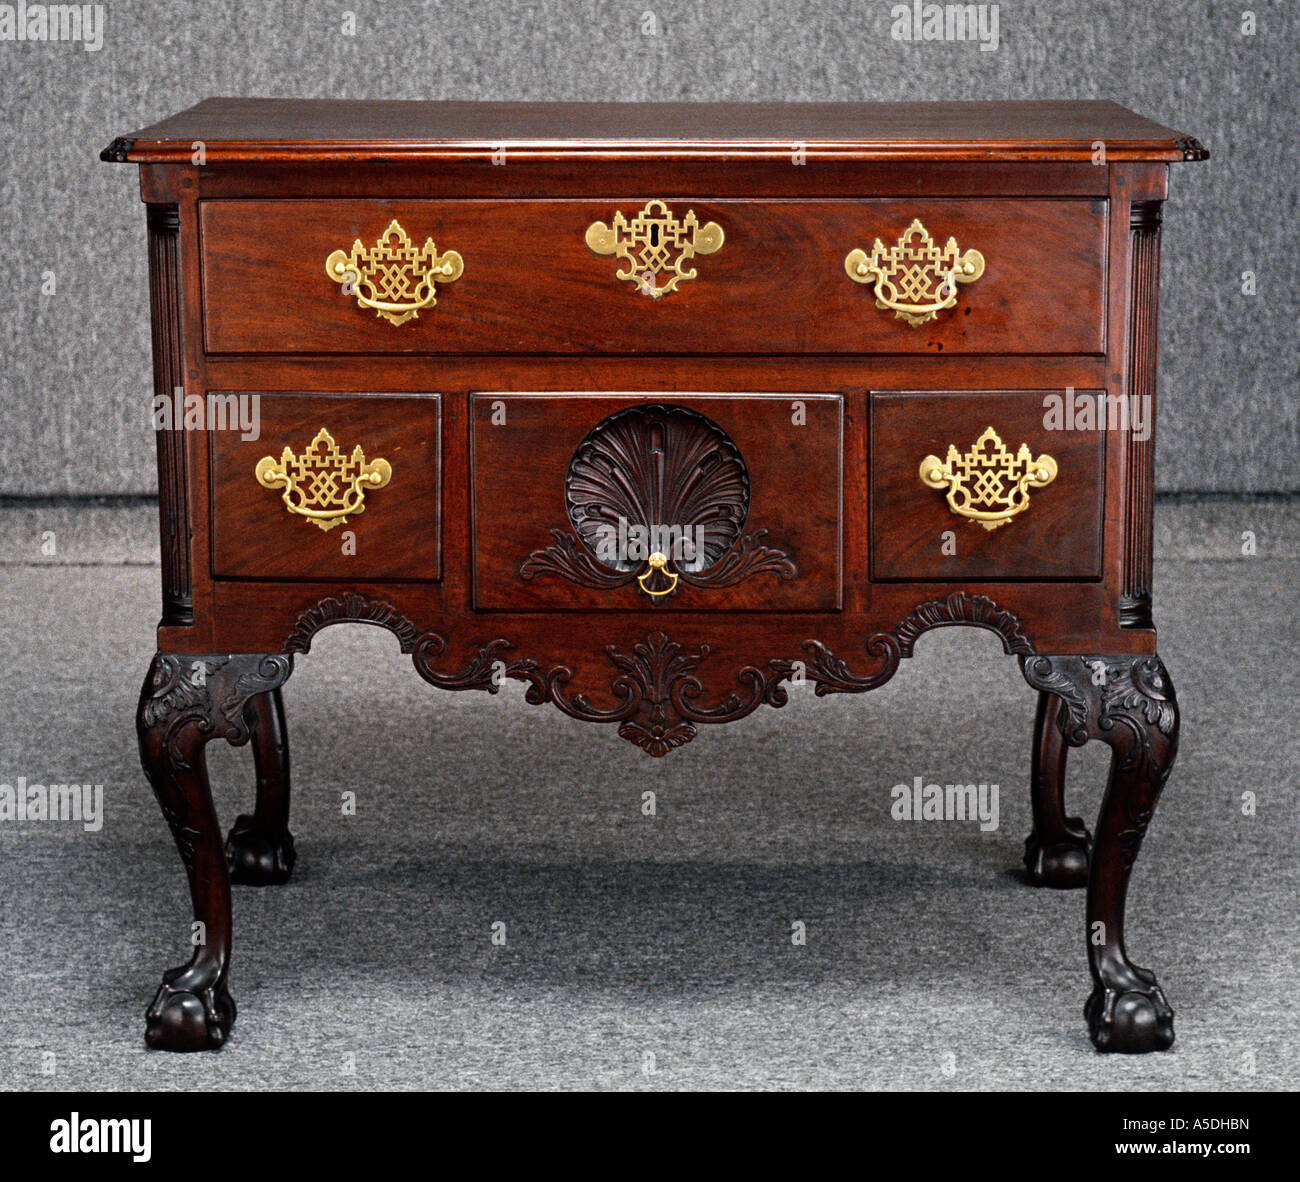 Chippendale Furniture Stock Photos Chippendale Furniture Stock